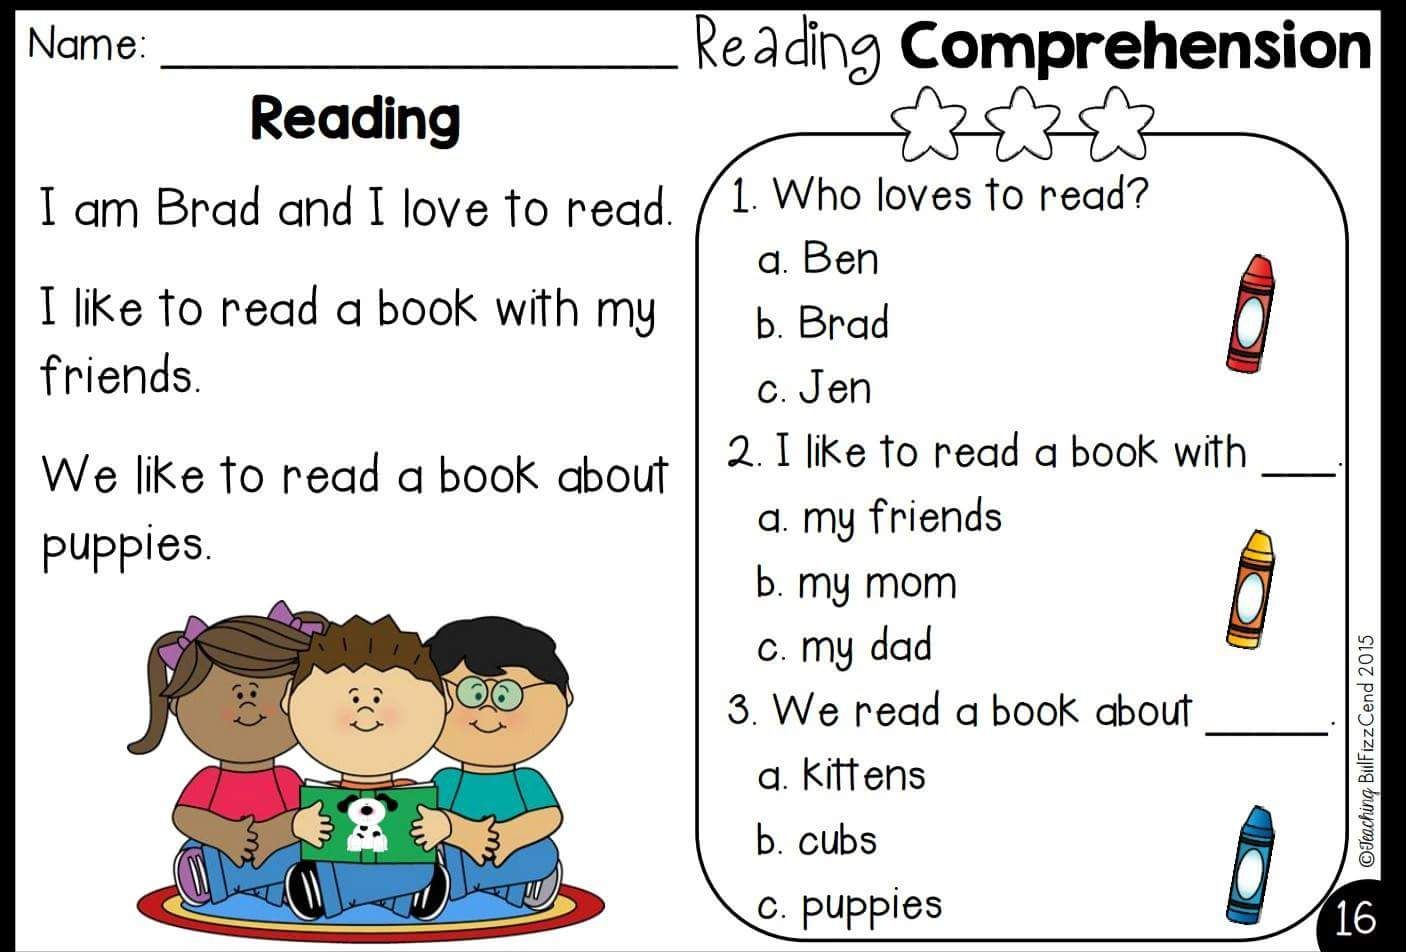 Pin By Rabab Fakih On English For Kids Reading Comprehension Reading Comprehension Passages Grammar For Kids [ 952 x 1406 Pixel ]